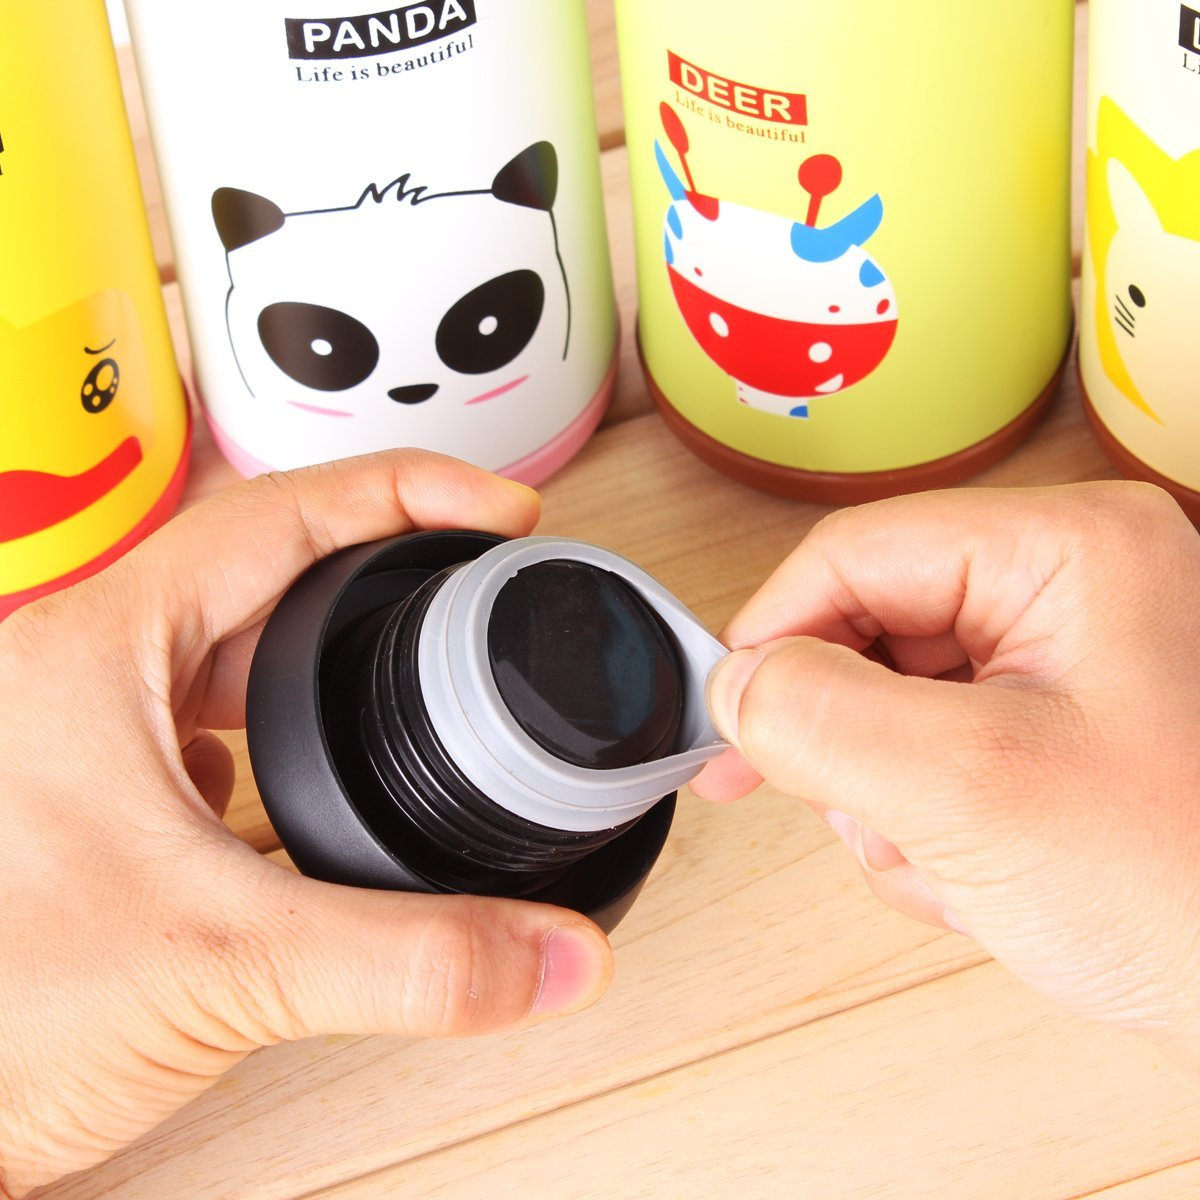 Thermos Cup - thermos - travel - mug - lid - instructions - thermos - flask - online - Stainless - Steel - Cartoon - Thermos - Cup - Bottle - Funny - Birthday - Gift